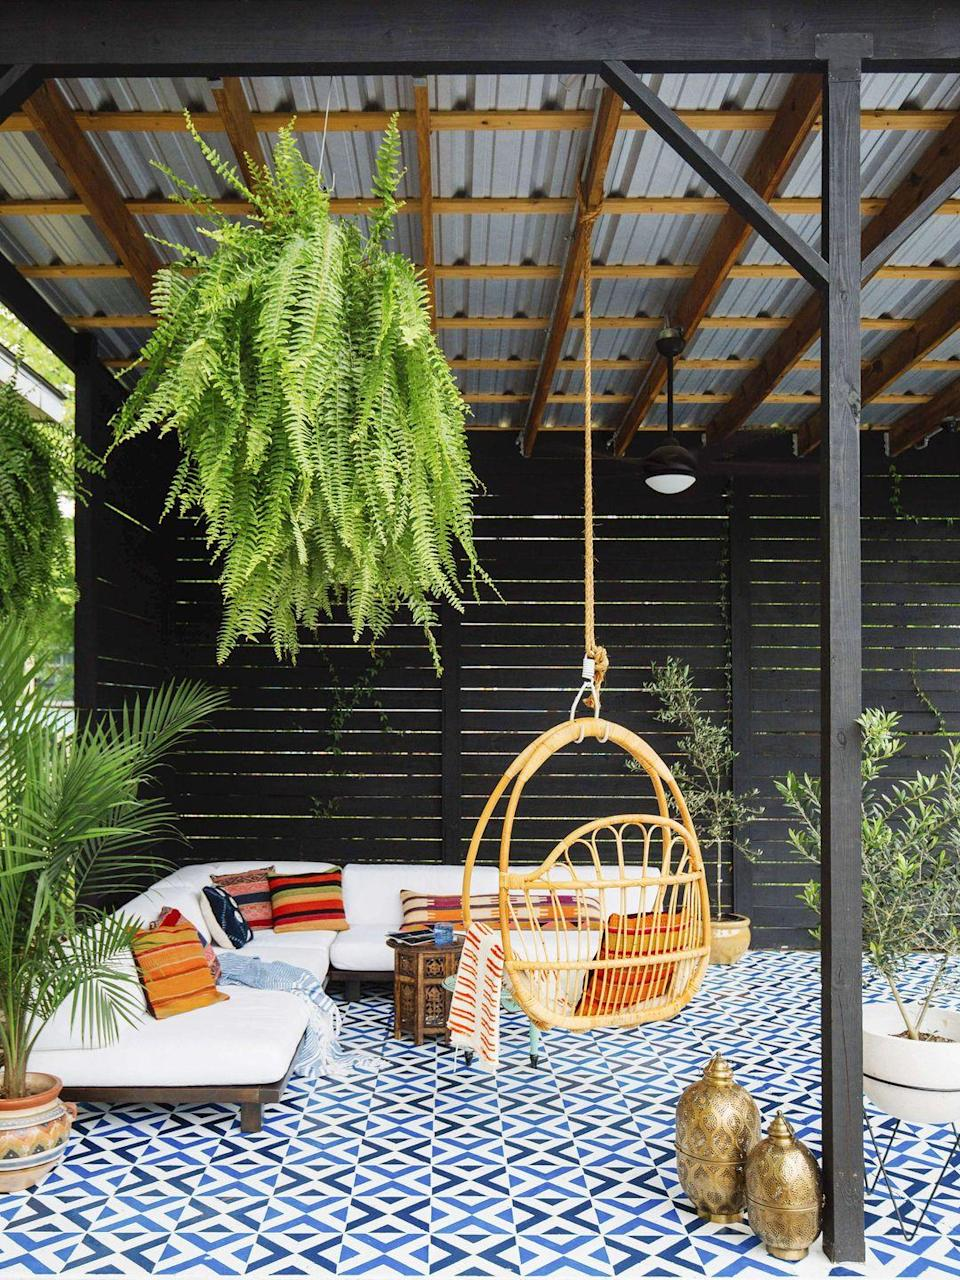 """<p>Turning an empty backyard corner into paradise is easier than you may think. A colorful rug, a floating couch and plants pull together a space, but it'll be a porch swing that steals the show. </p><p><strong>RELATED:</strong> <a href=""""https://www.goodhousekeeping.com/home/gardening/g1809/decor-ideas-deck-porch/"""" rel=""""nofollow noopener"""" target=""""_blank"""" data-ylk=""""slk:Decor Tips for Your Patio or Backyard"""" class=""""link rapid-noclick-resp"""">Decor Tips for Your Patio or Backyard</a></p>"""